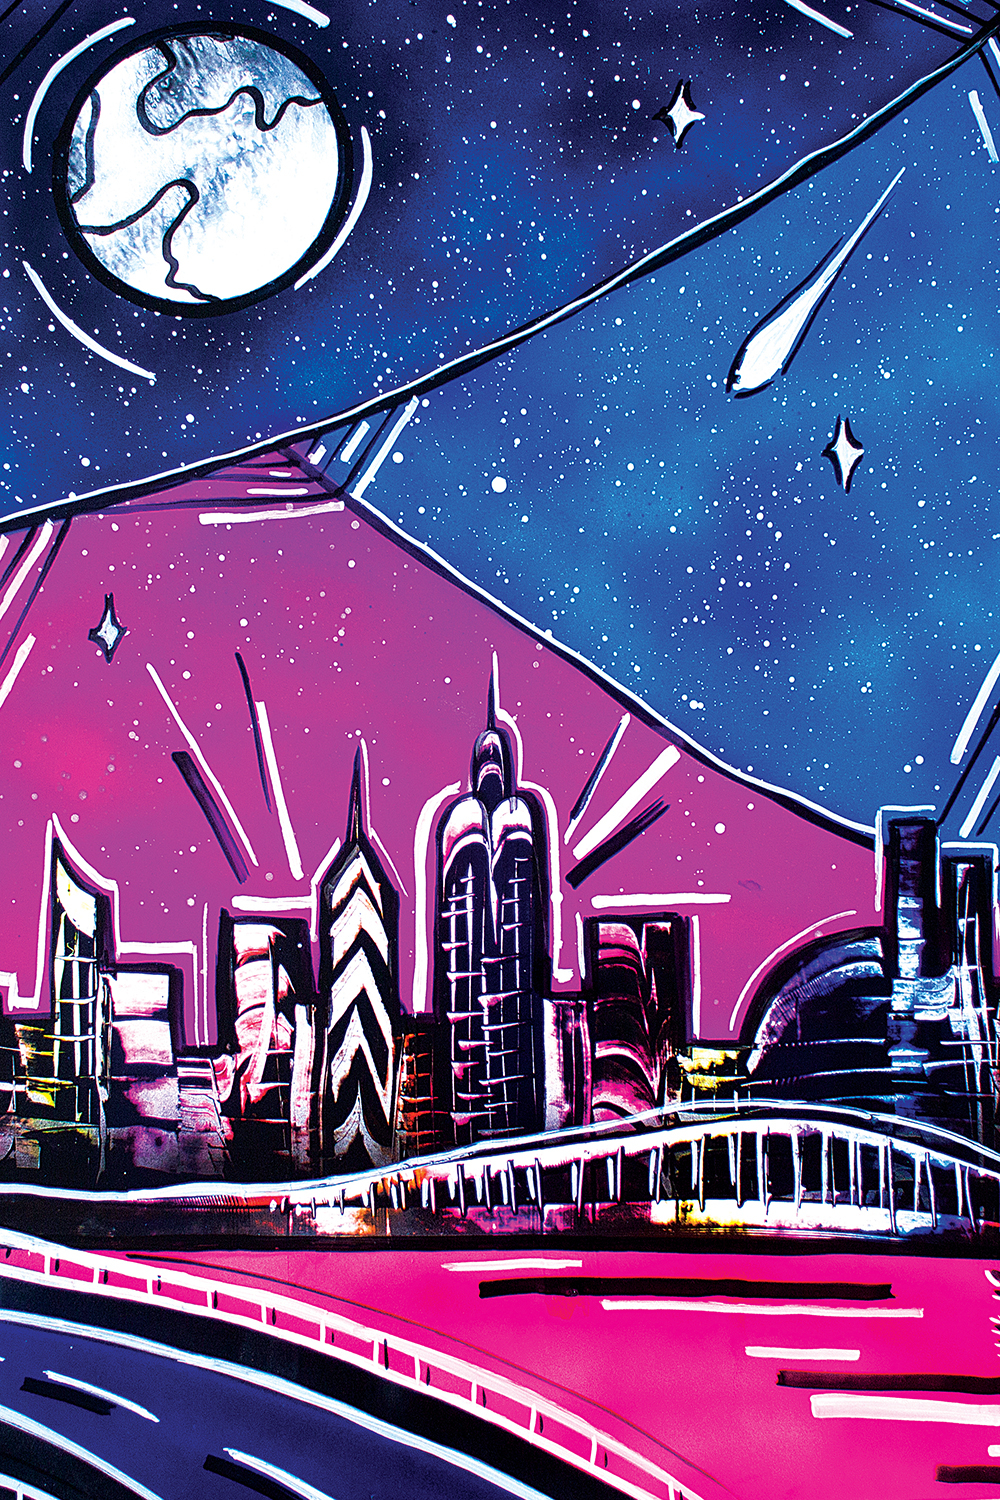 a drawing of new york in blue and pink that shows the moon and stars